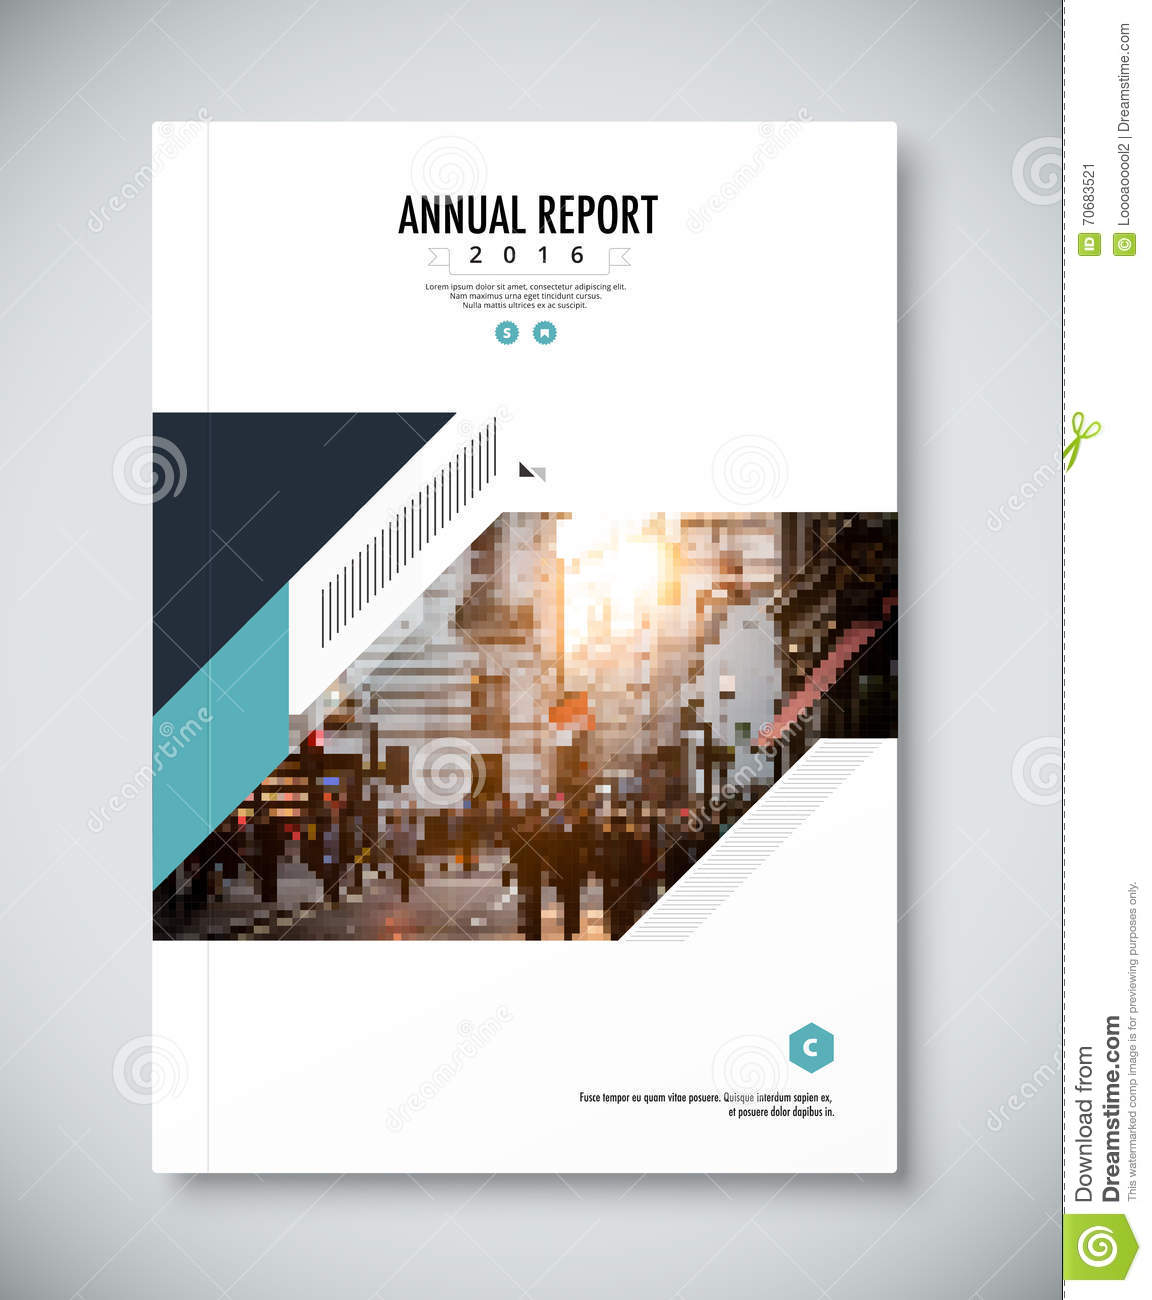 Corporate Annual Report Template Design. Corporate Business Docu  Annual Report Template Design